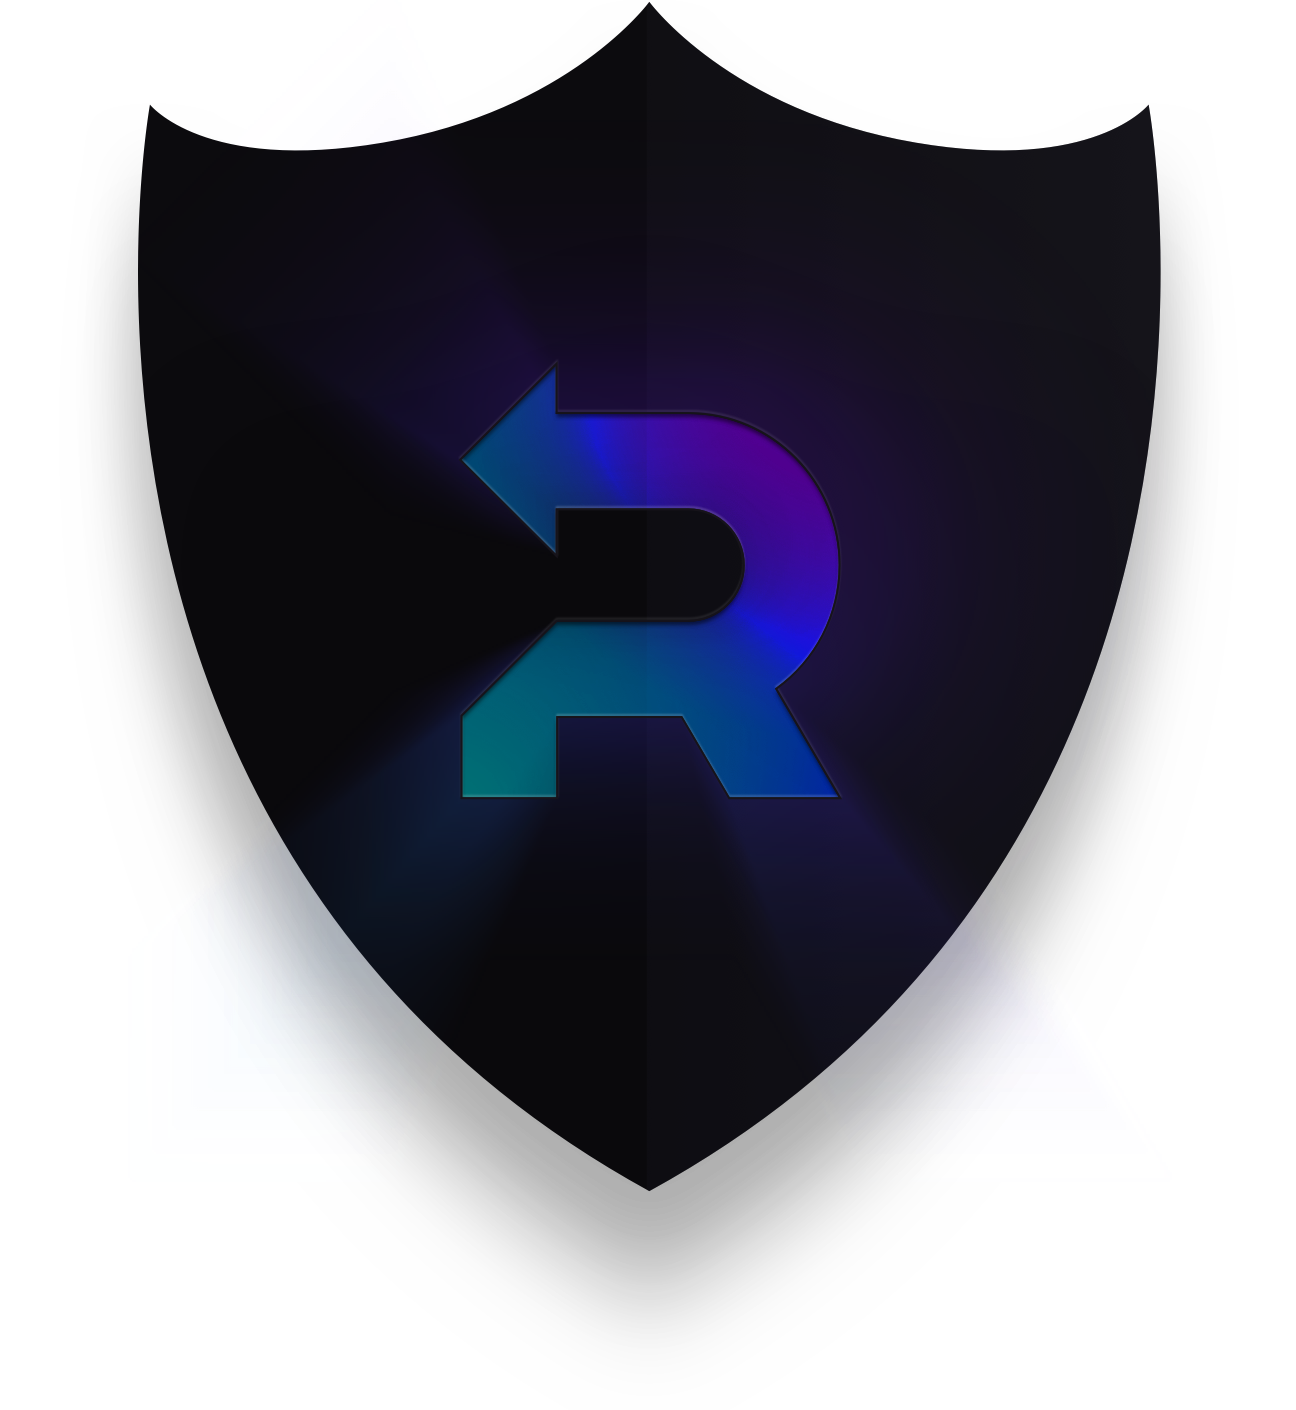 https://revoke.com/wp-content/uploads/2020/03/Security-revoke-sheild.png